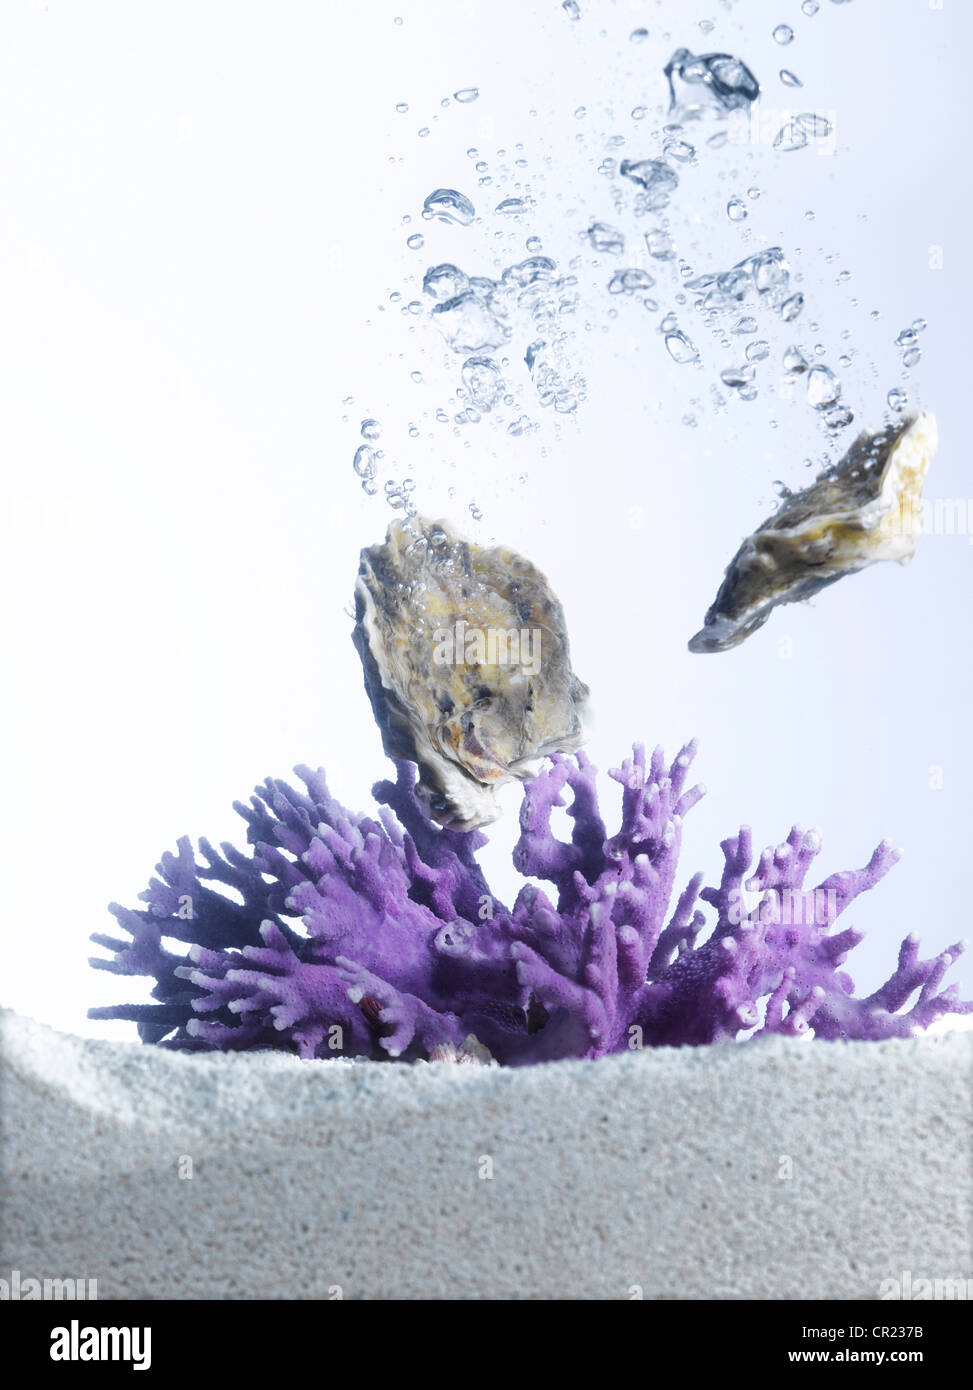 oysters in water with purple coral - Stock Image